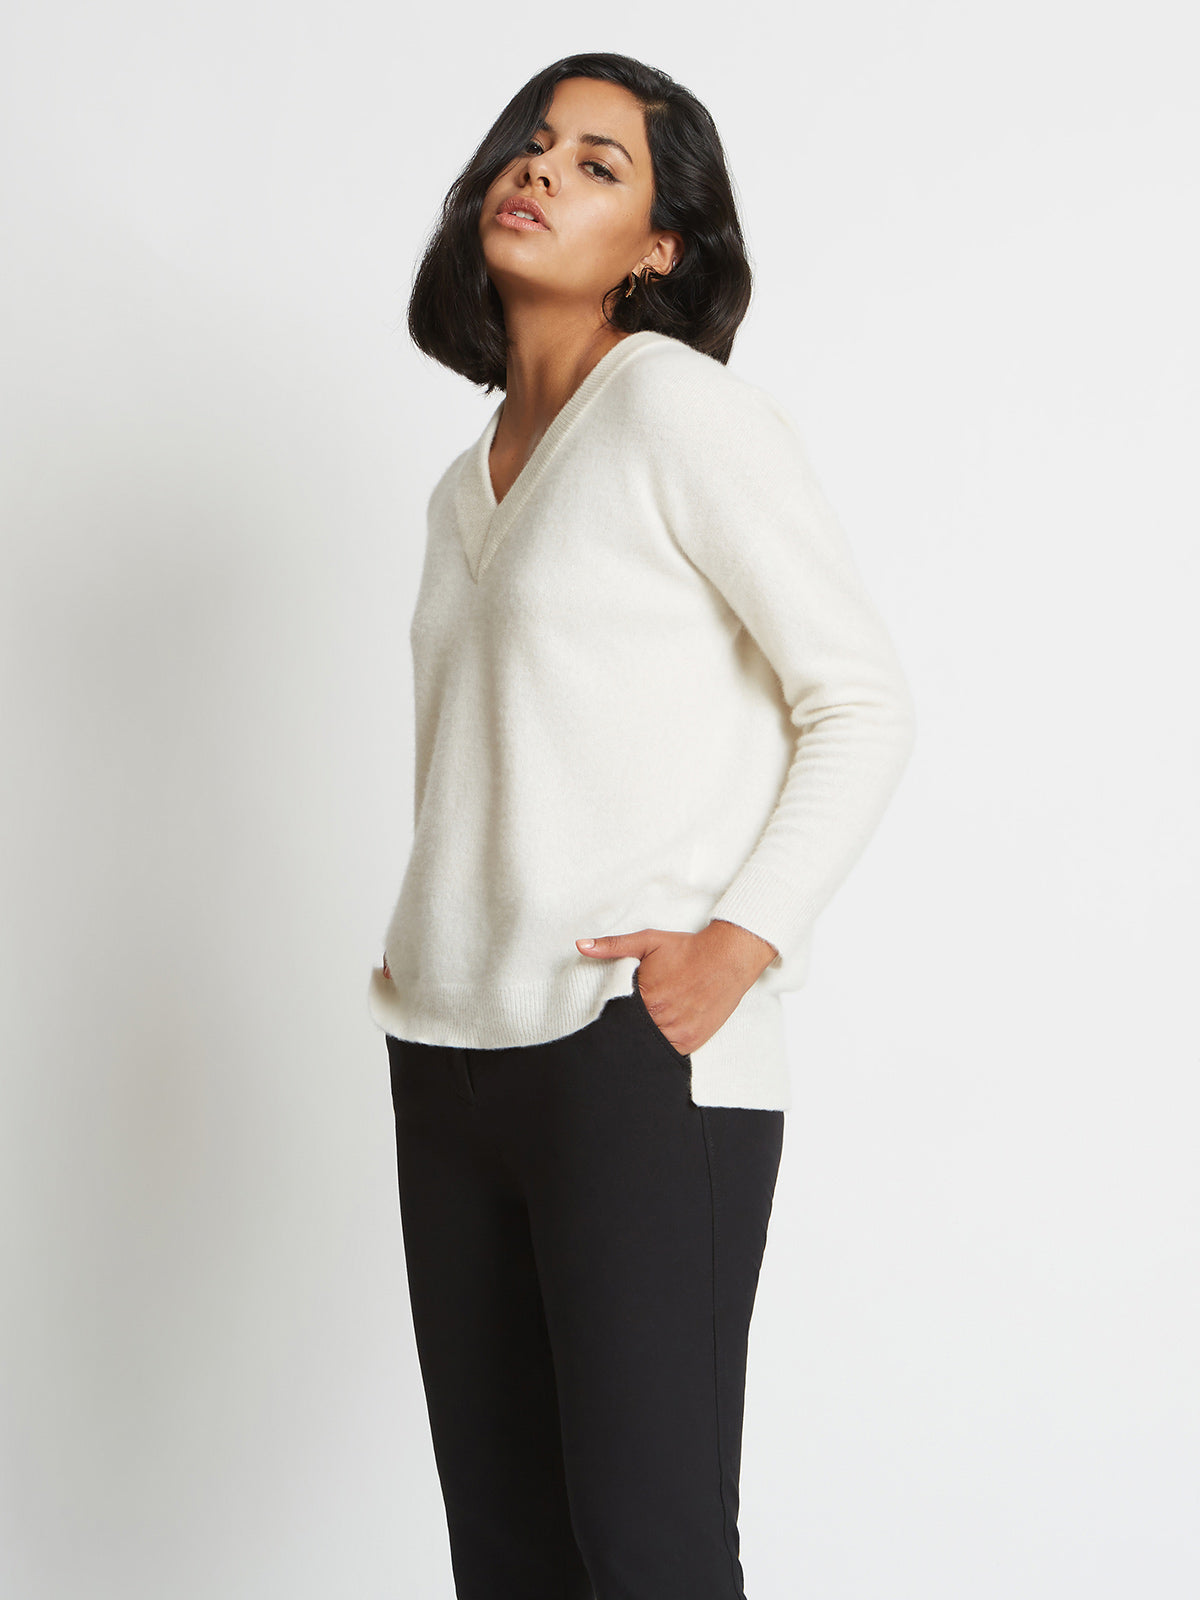 Crista 3D Knitted V-Neck Cashmere Sweater | Sugar